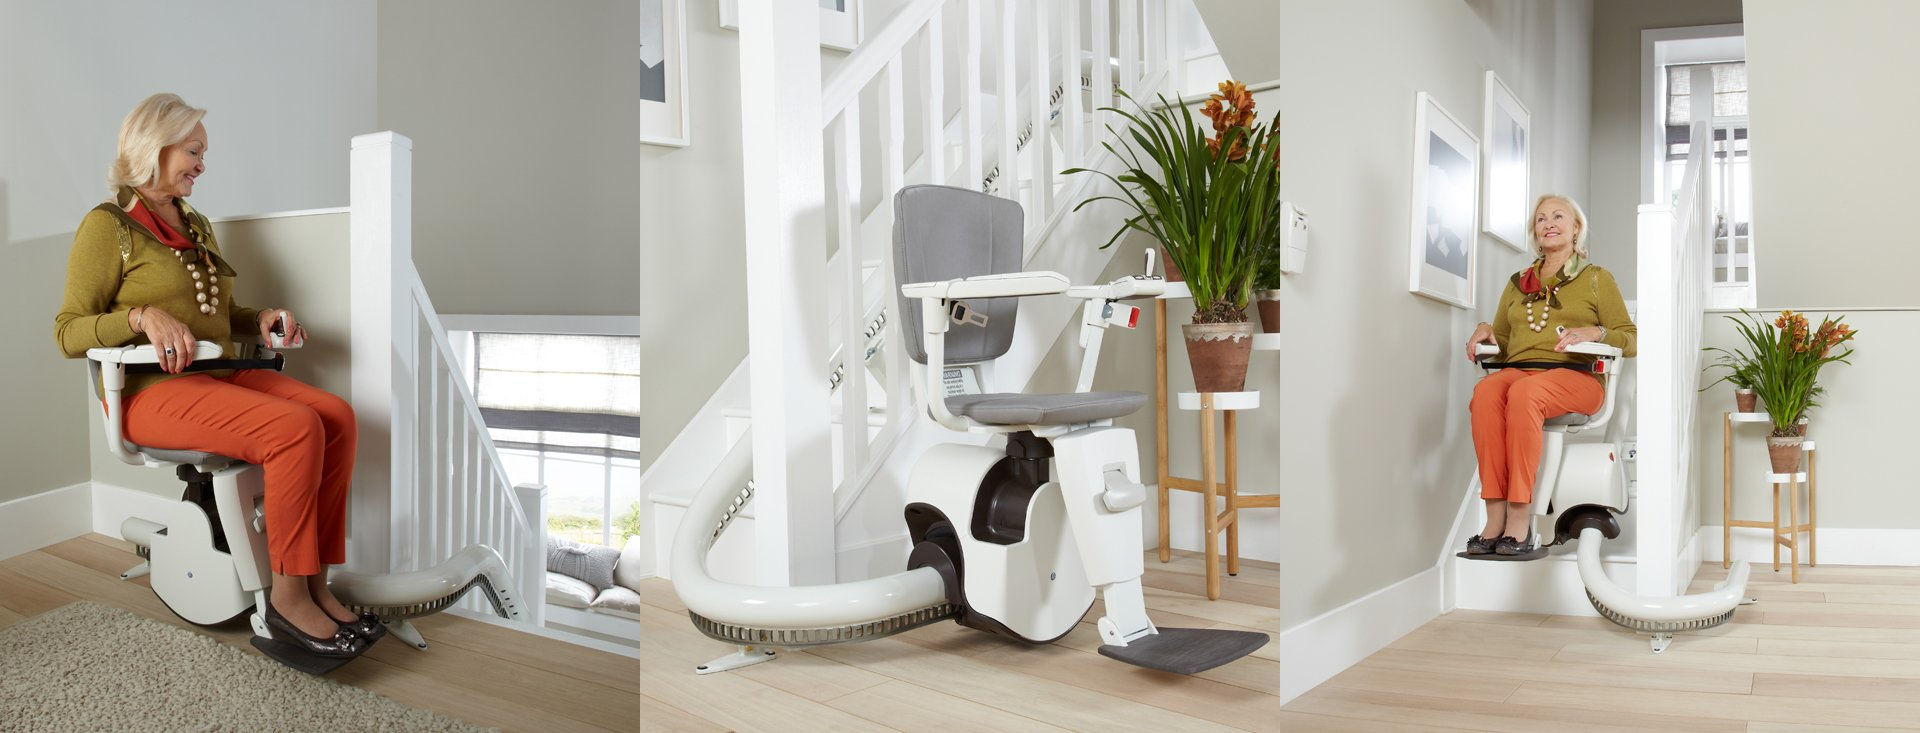 a lady using curved stairlift